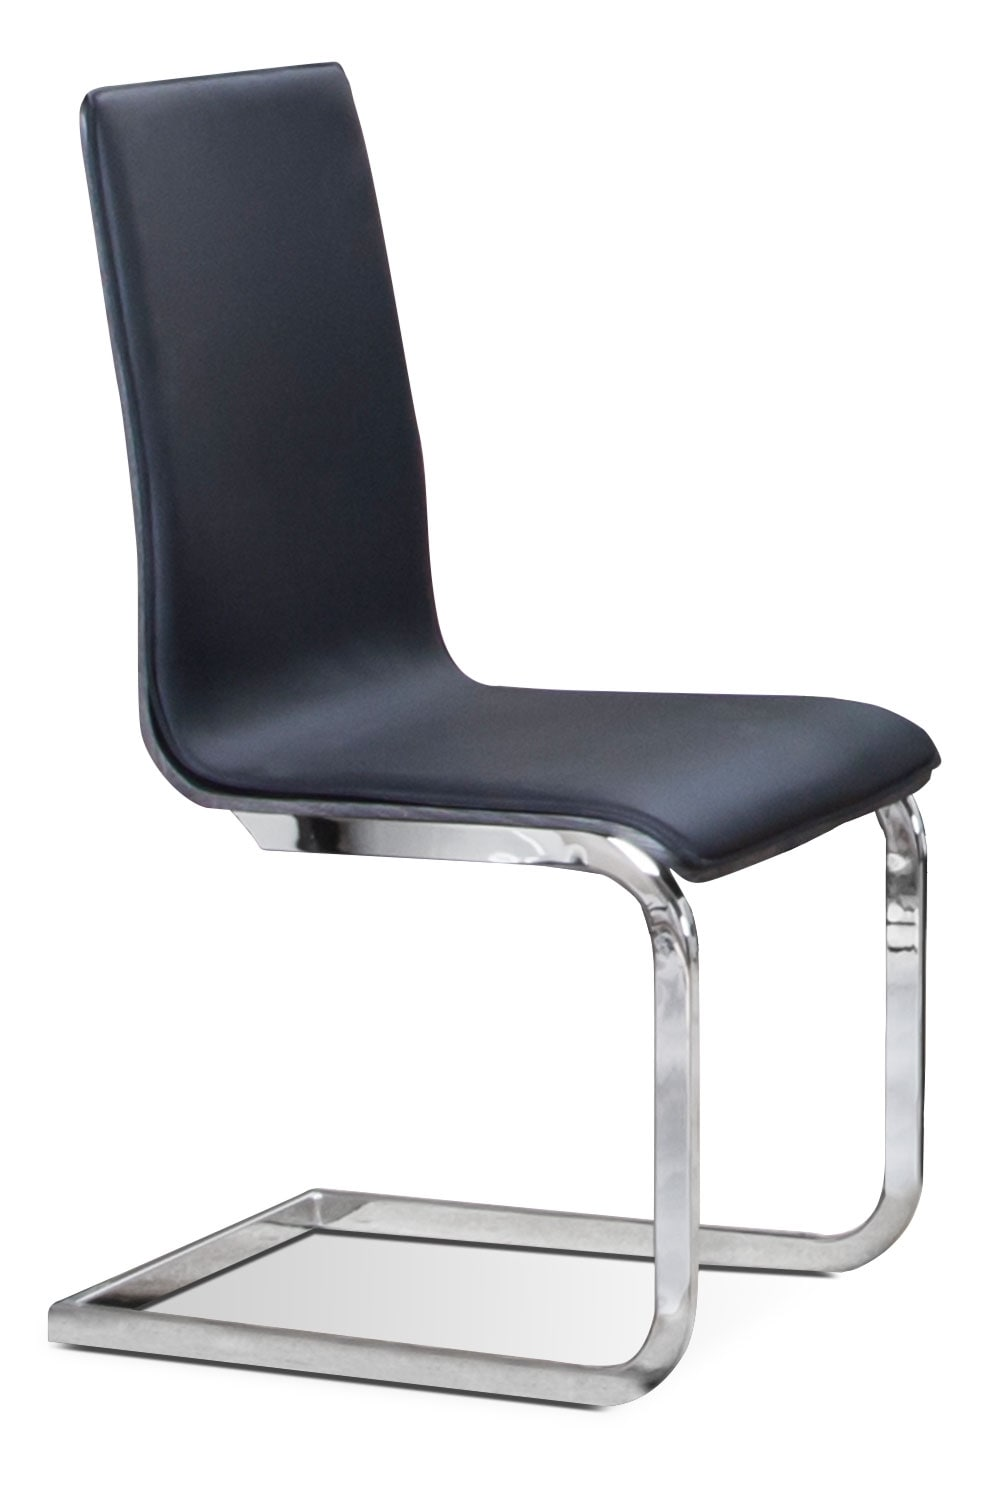 Ronin Side Chair - Charcoal